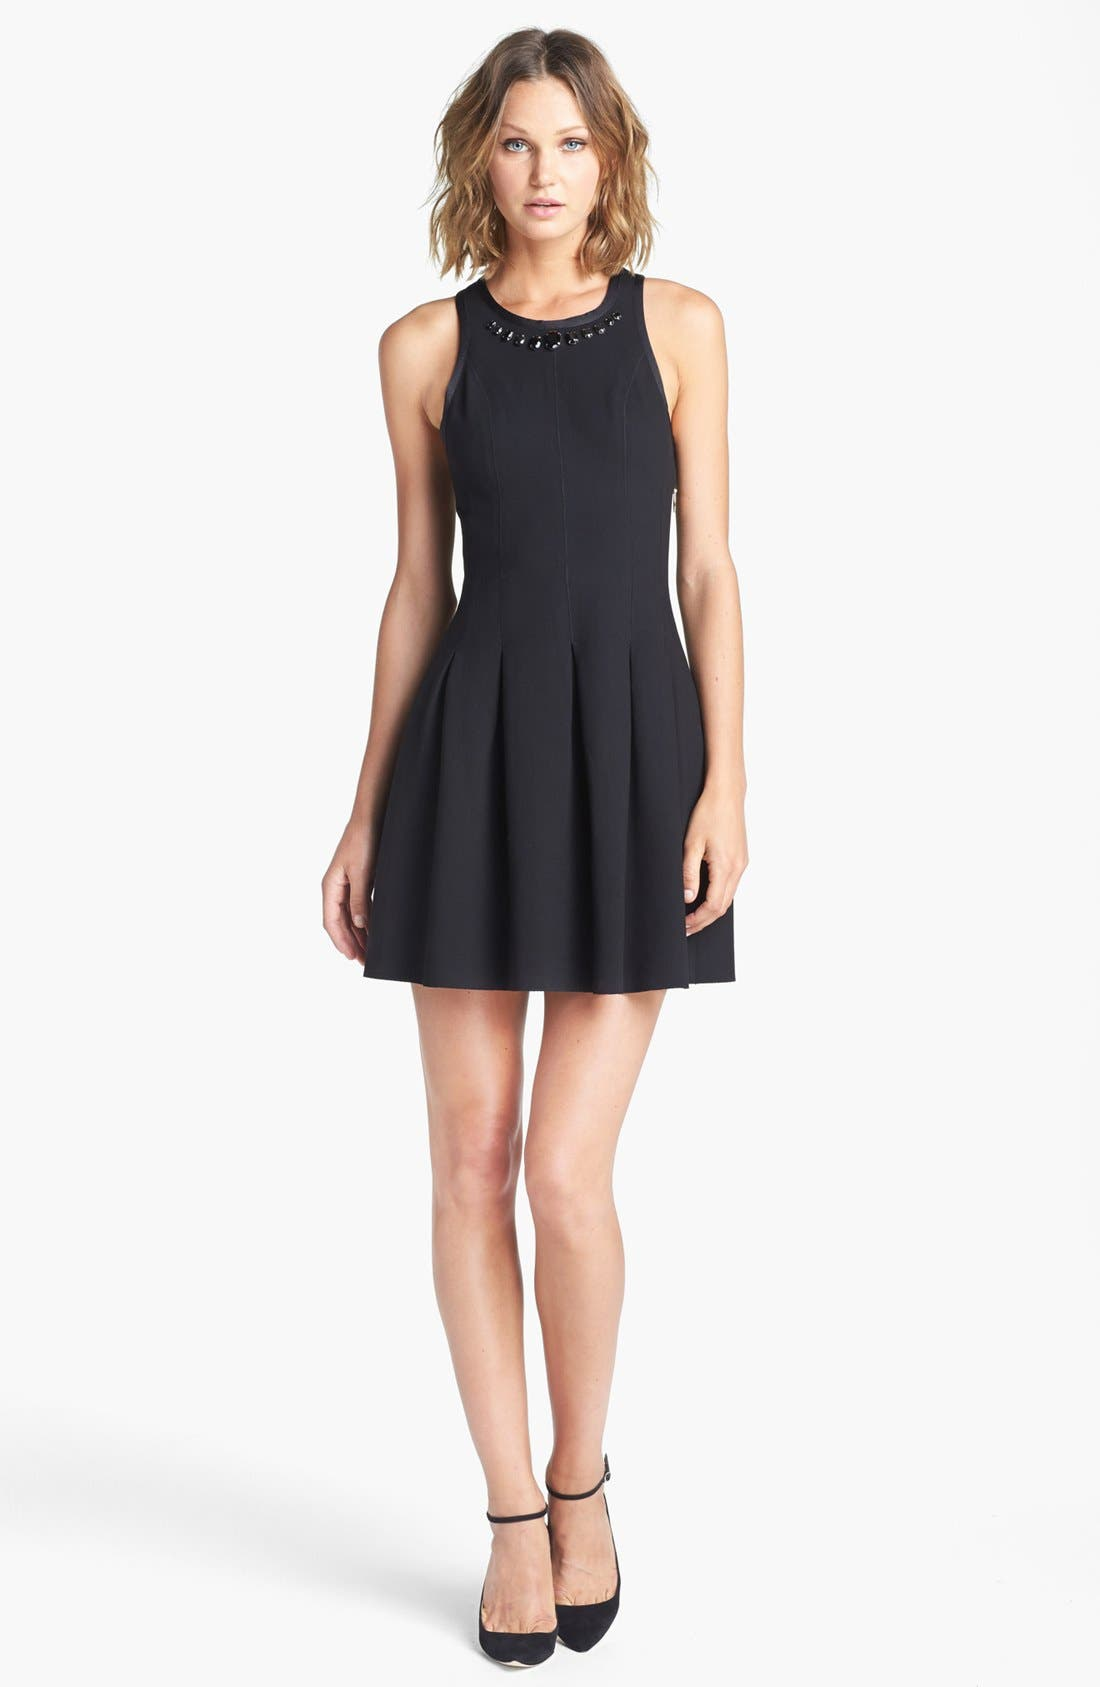 Main Image - Juicy Couture Fit & Flare Dress